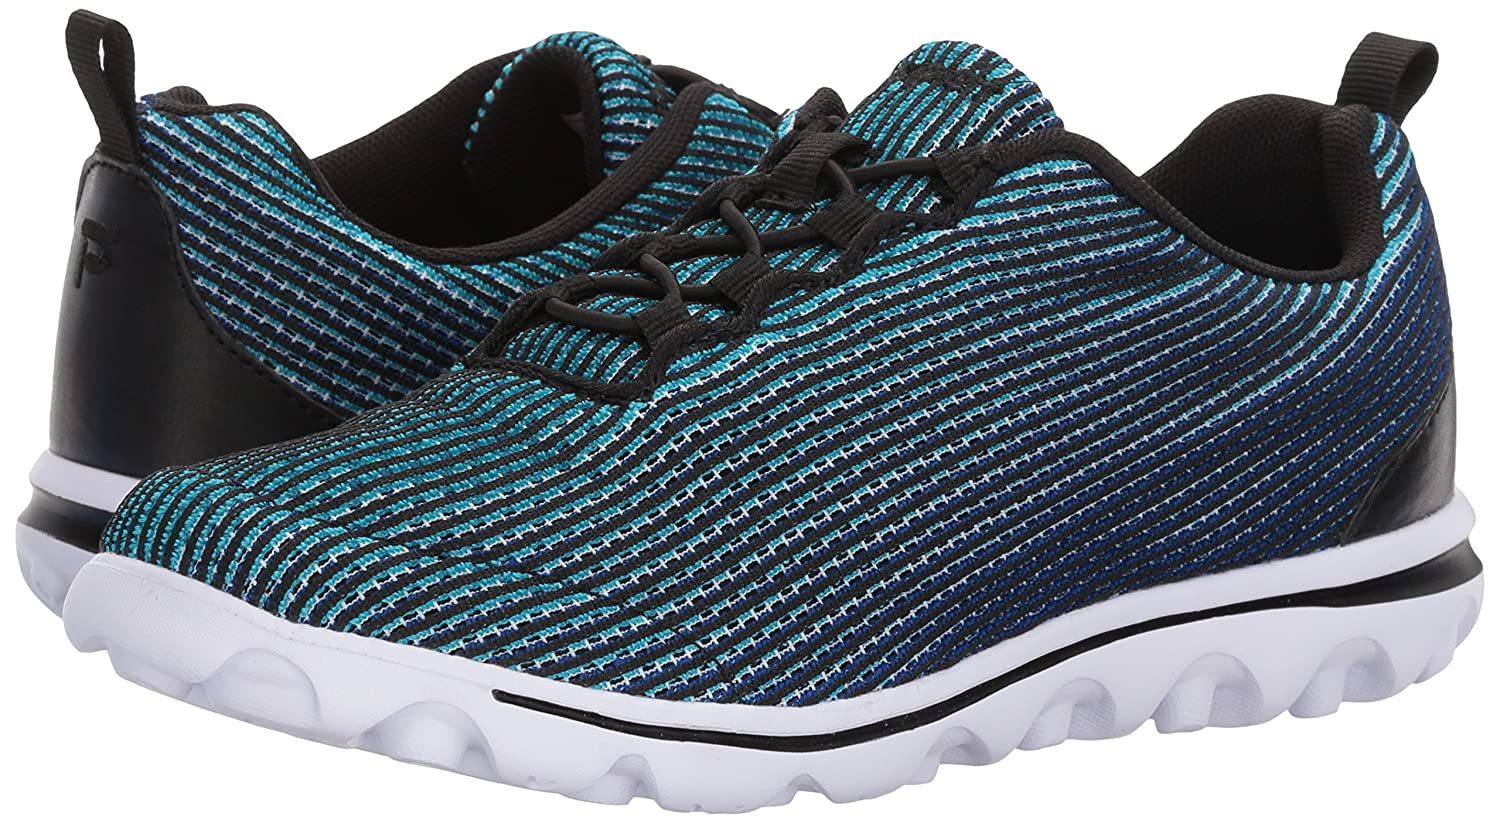 Propét Women's B071FTXX64 TravelActiv Xpress Sneaker B071FTXX64 Women's 8.5 2E US|Black/Blue 73e207